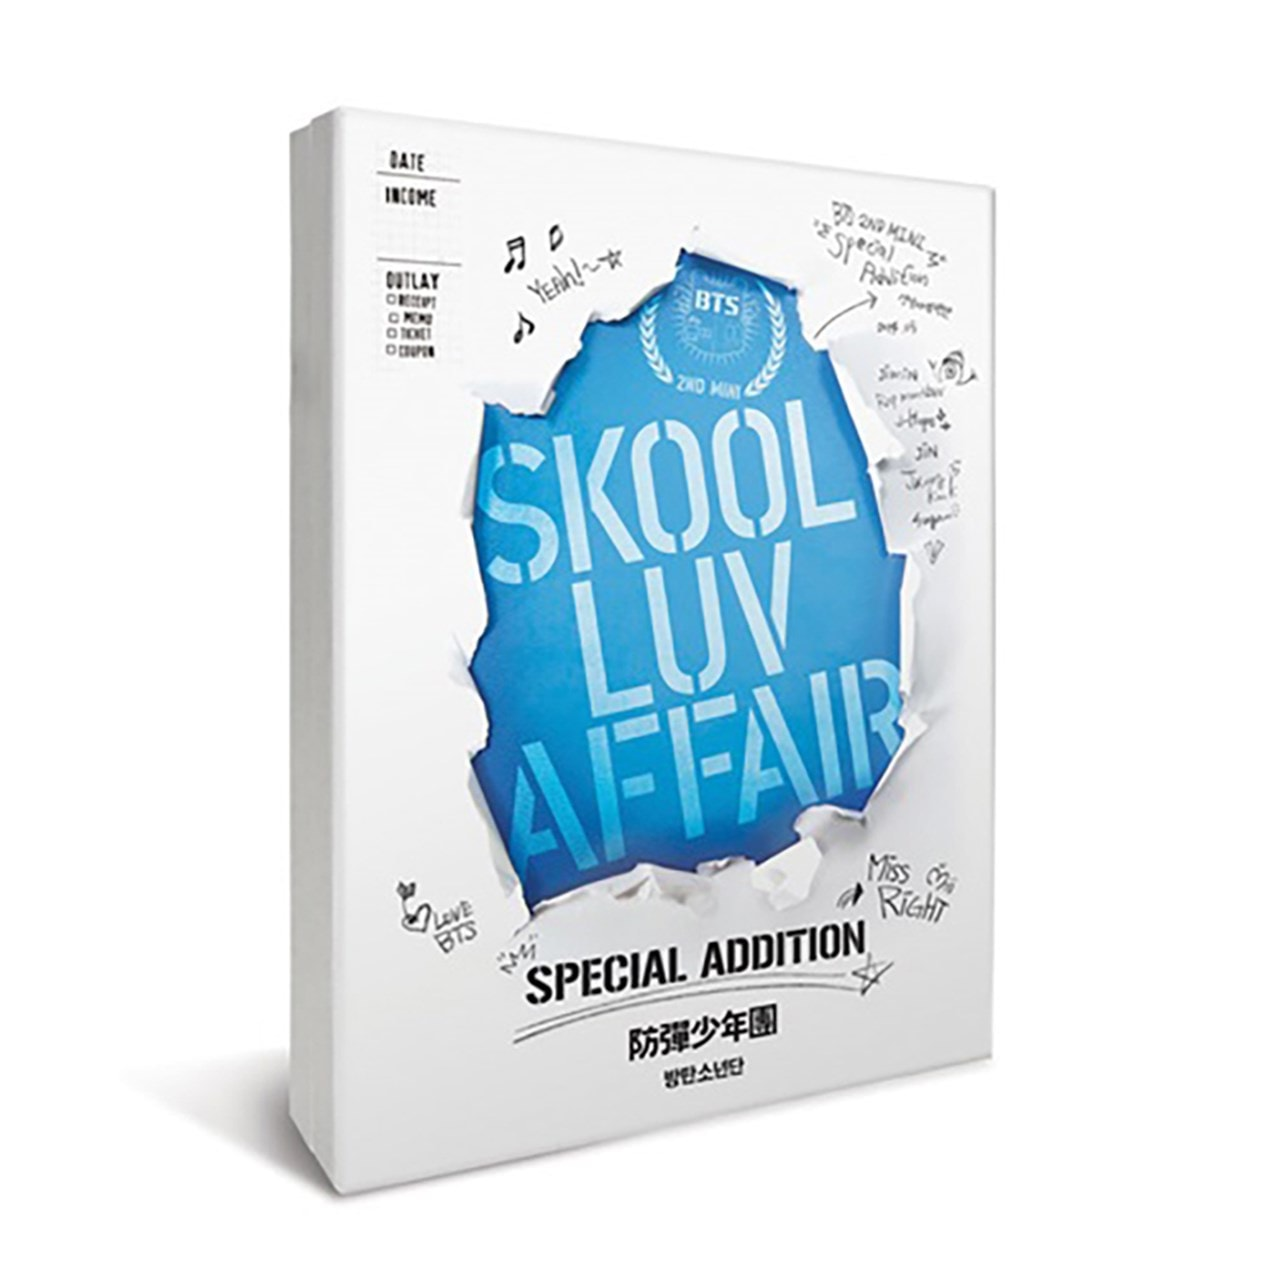 Skool Luv Affair - Special Addition - 1